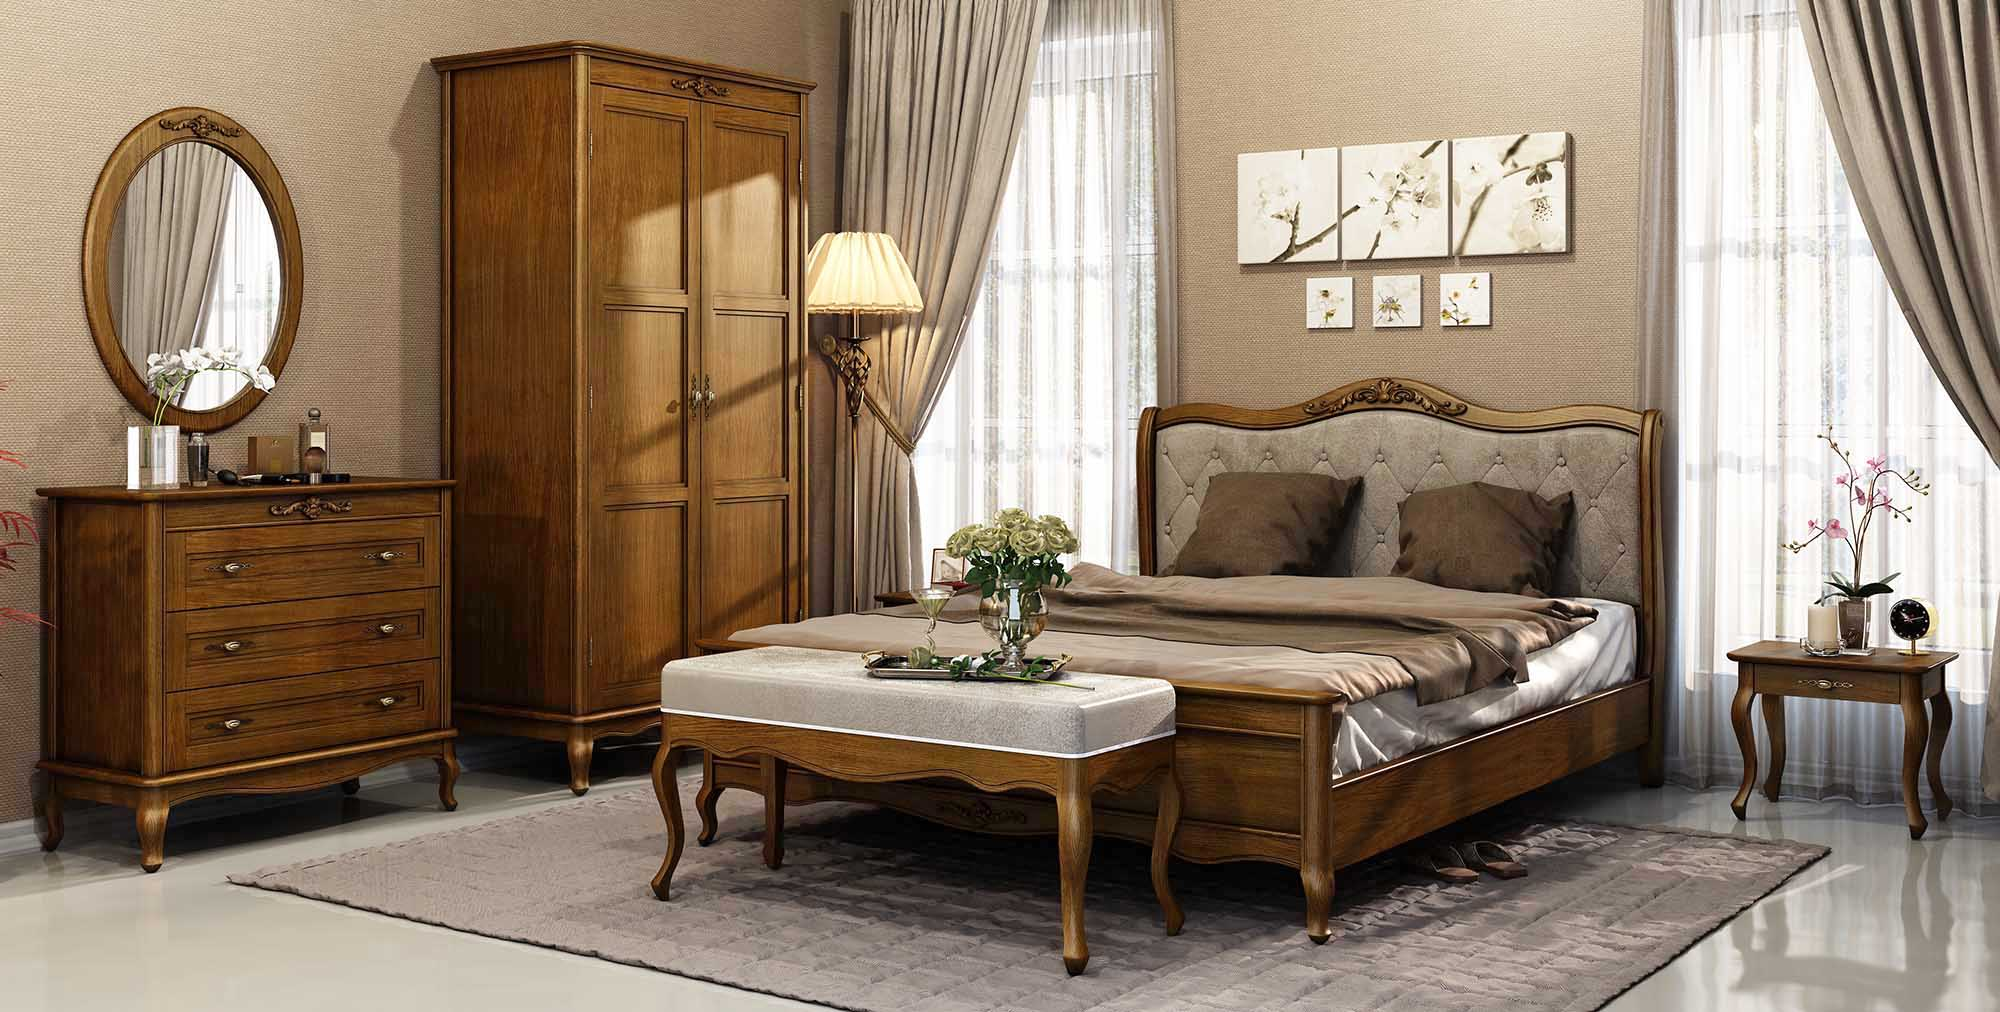 palermo_bedroom_5